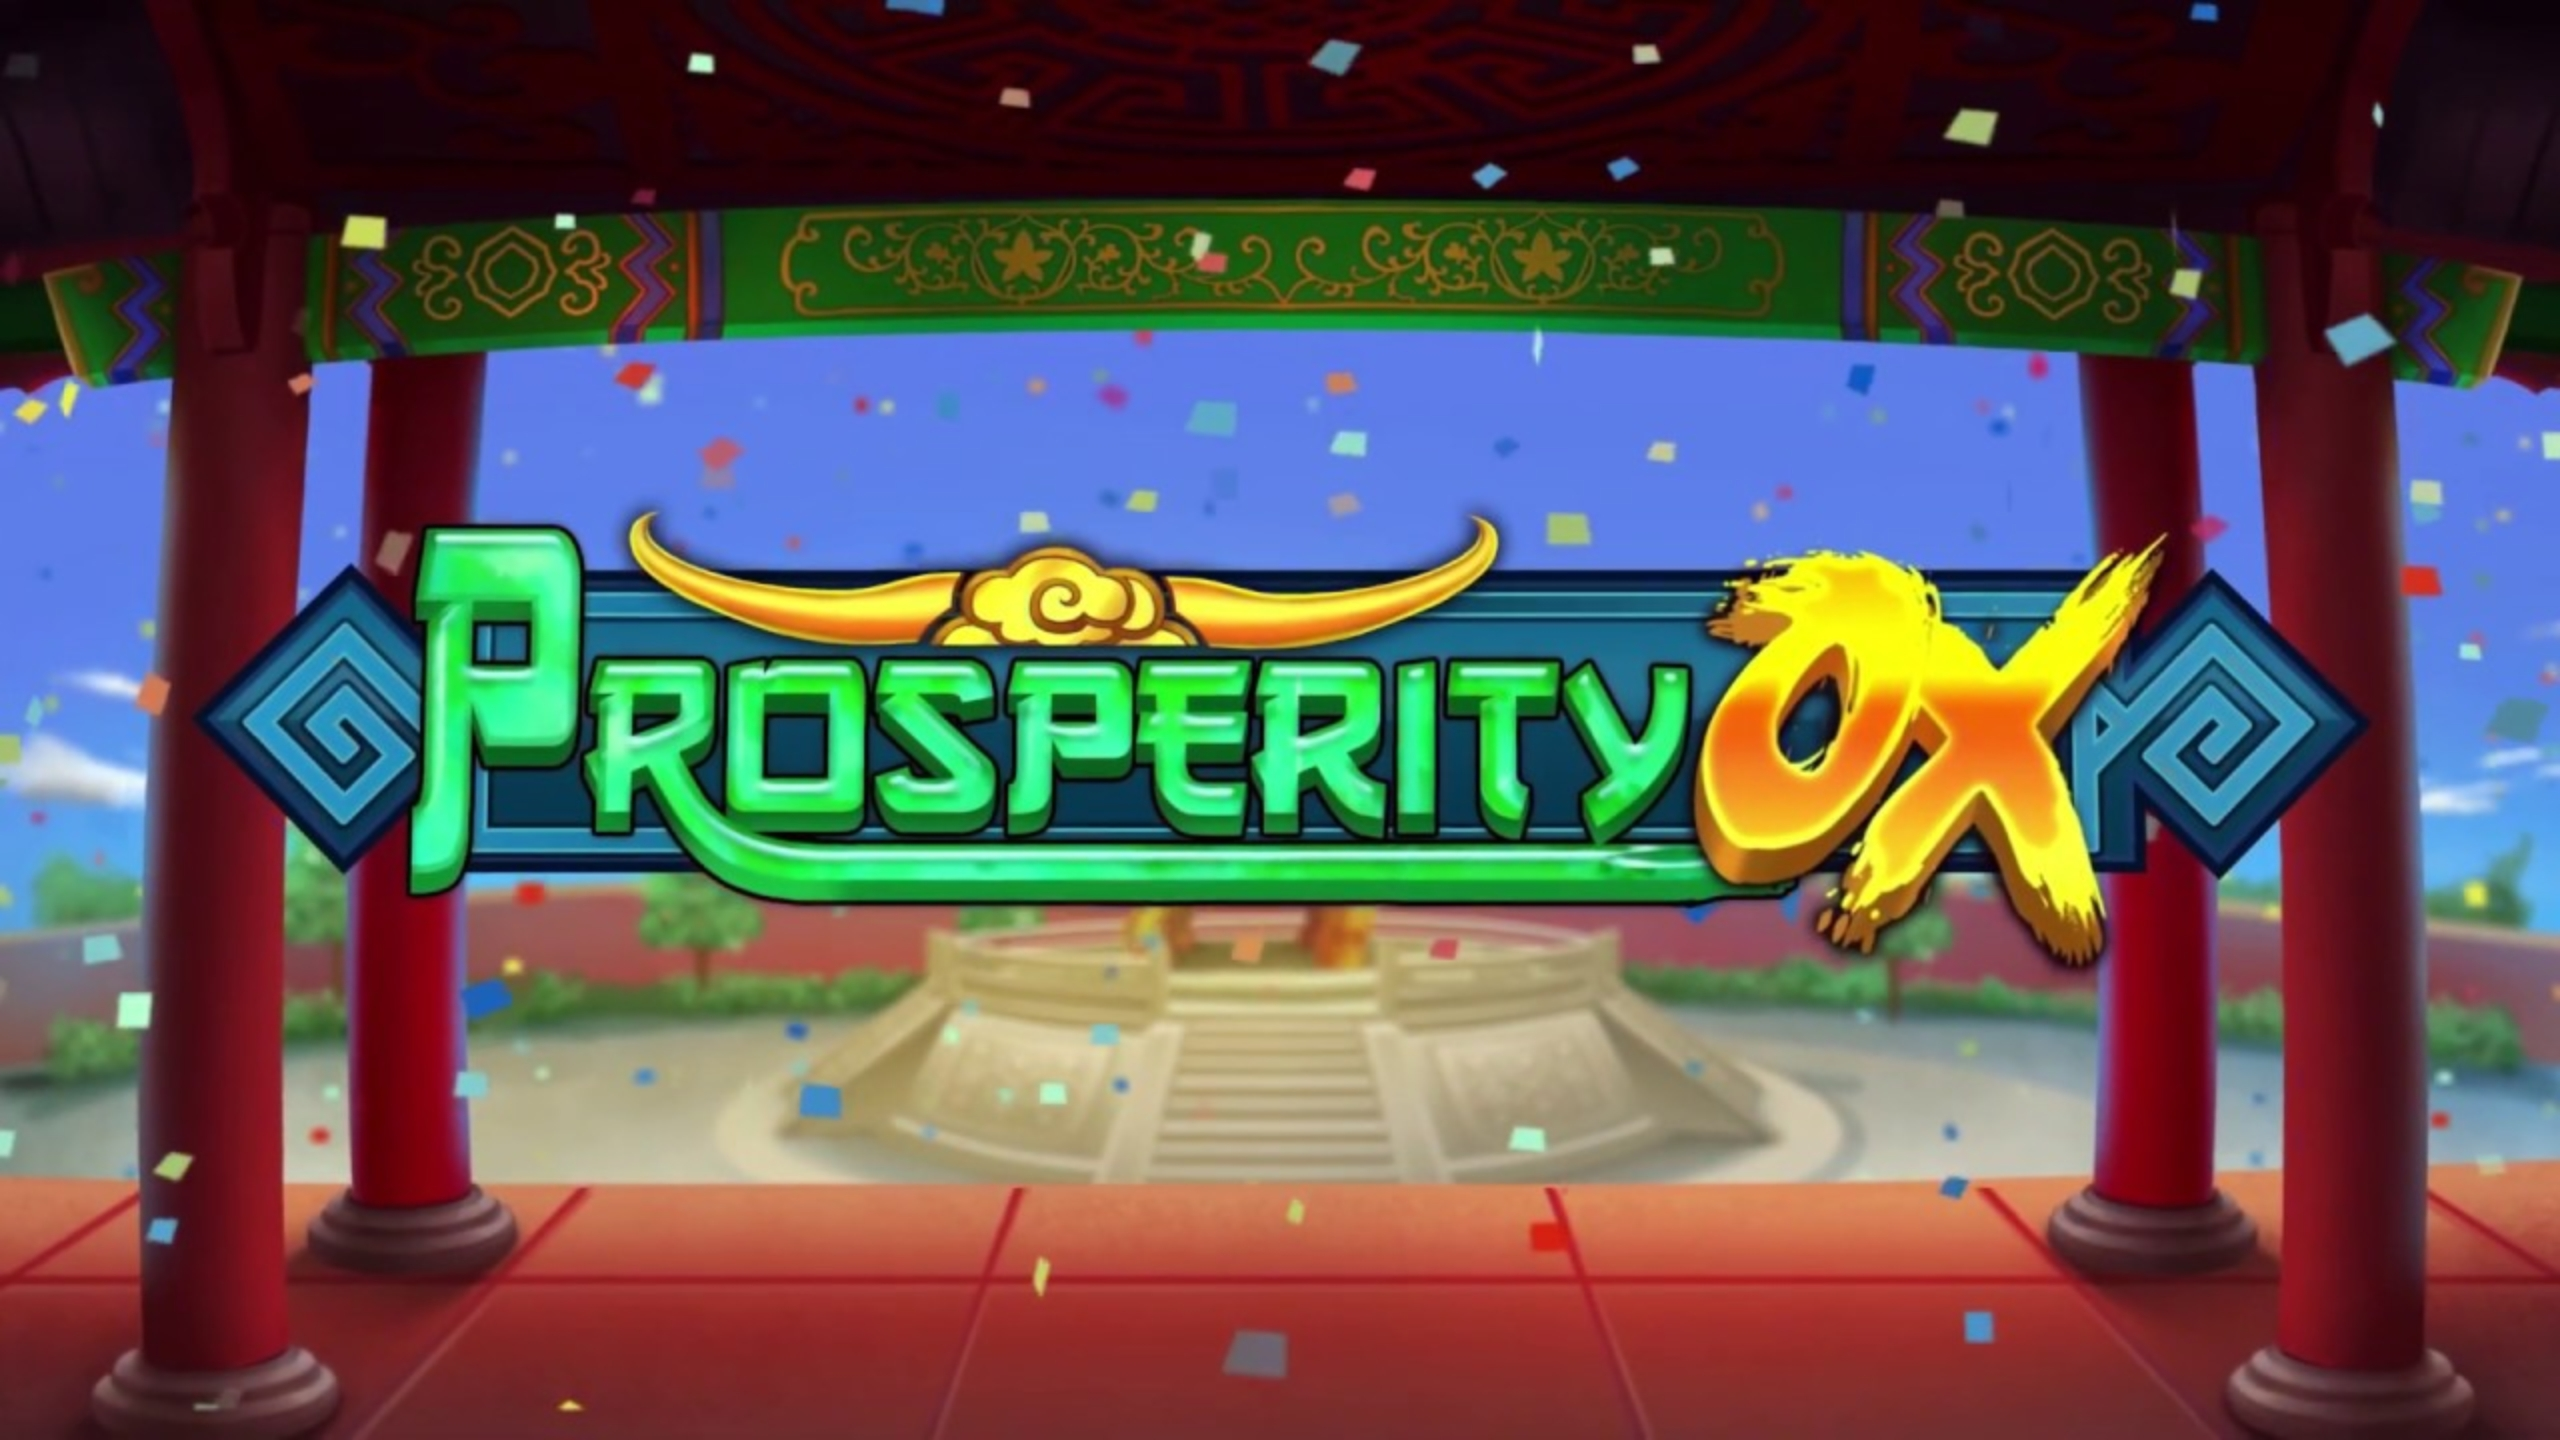 The Prosperity Ox Online Slot Demo Game by iSoftBet